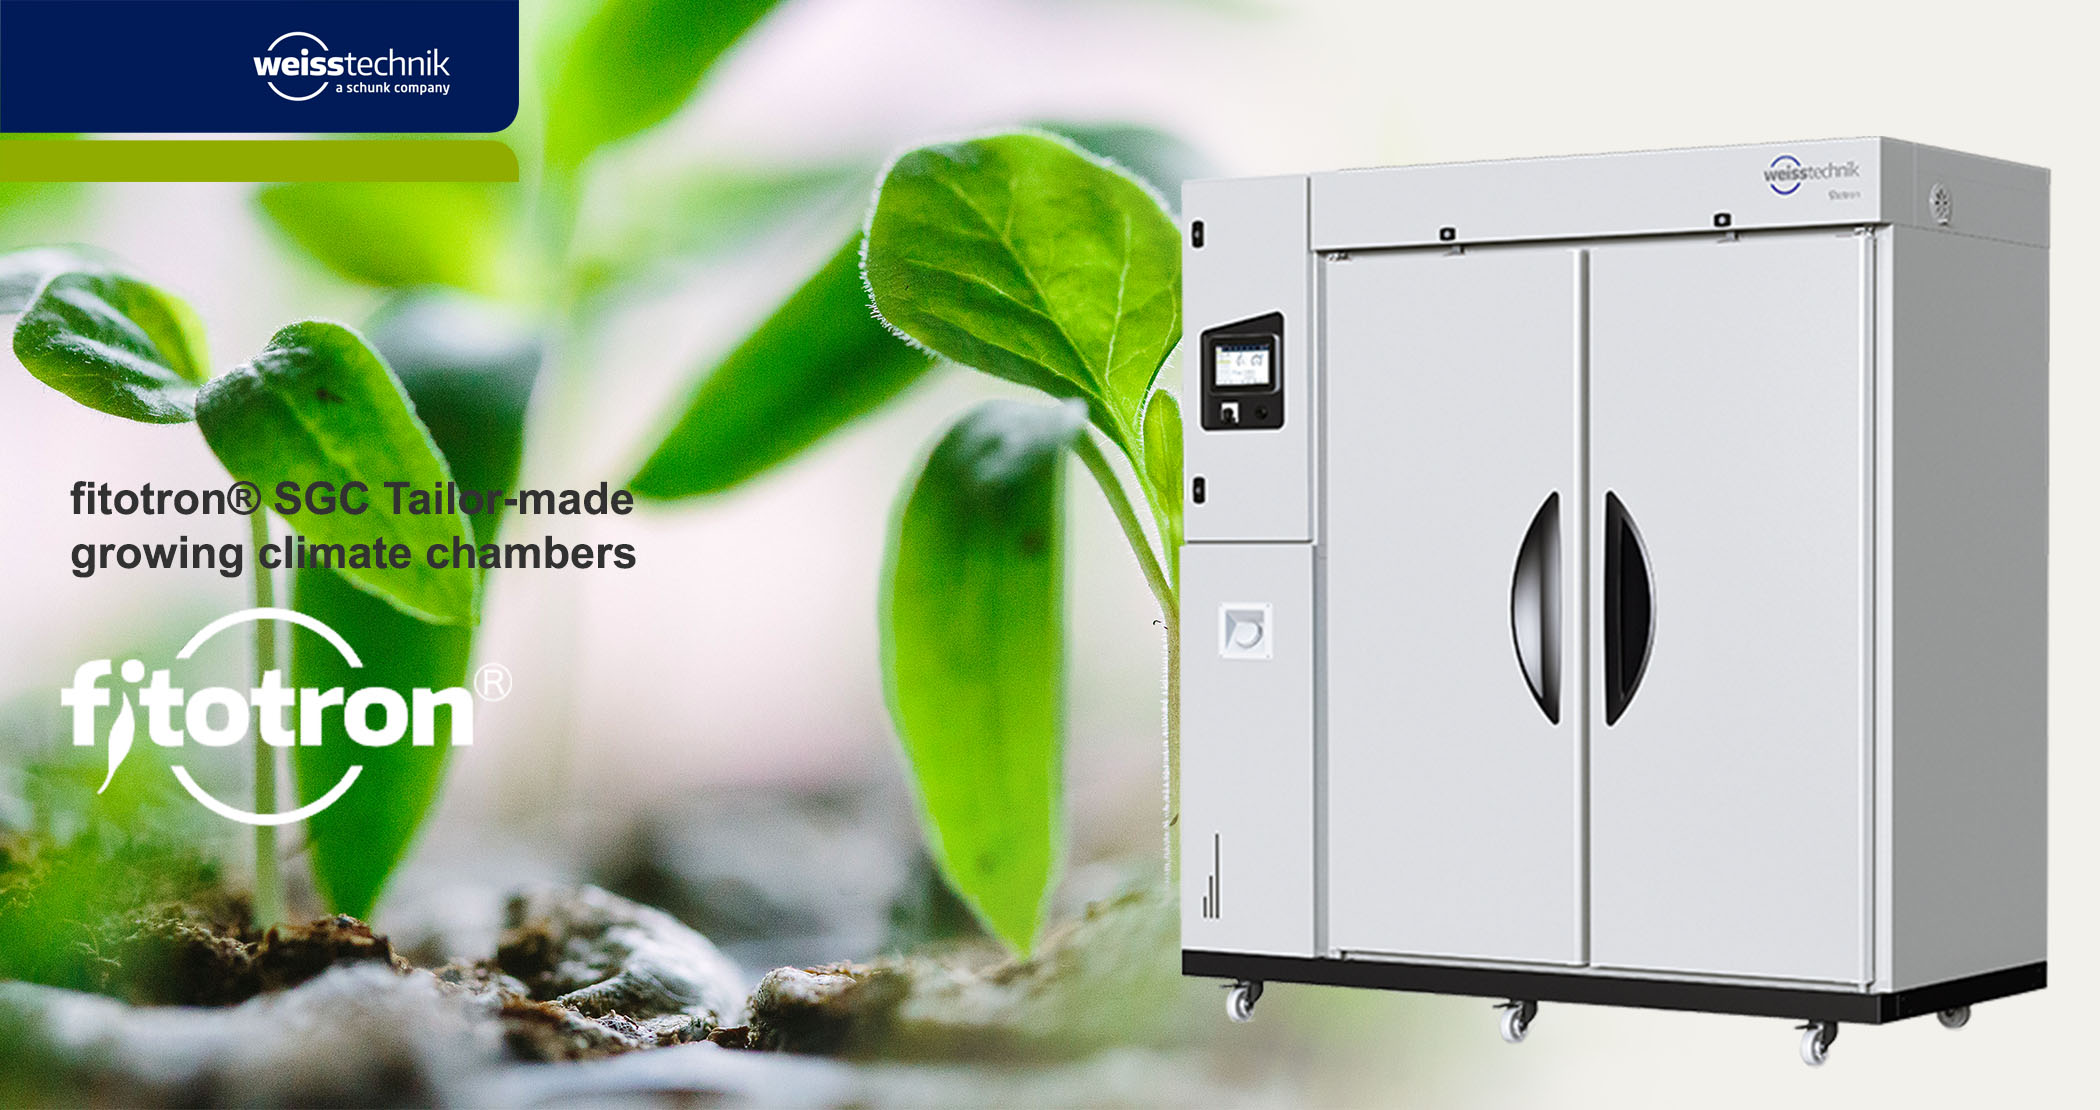 Fitotron SGC Tailor-made growing climate chambers